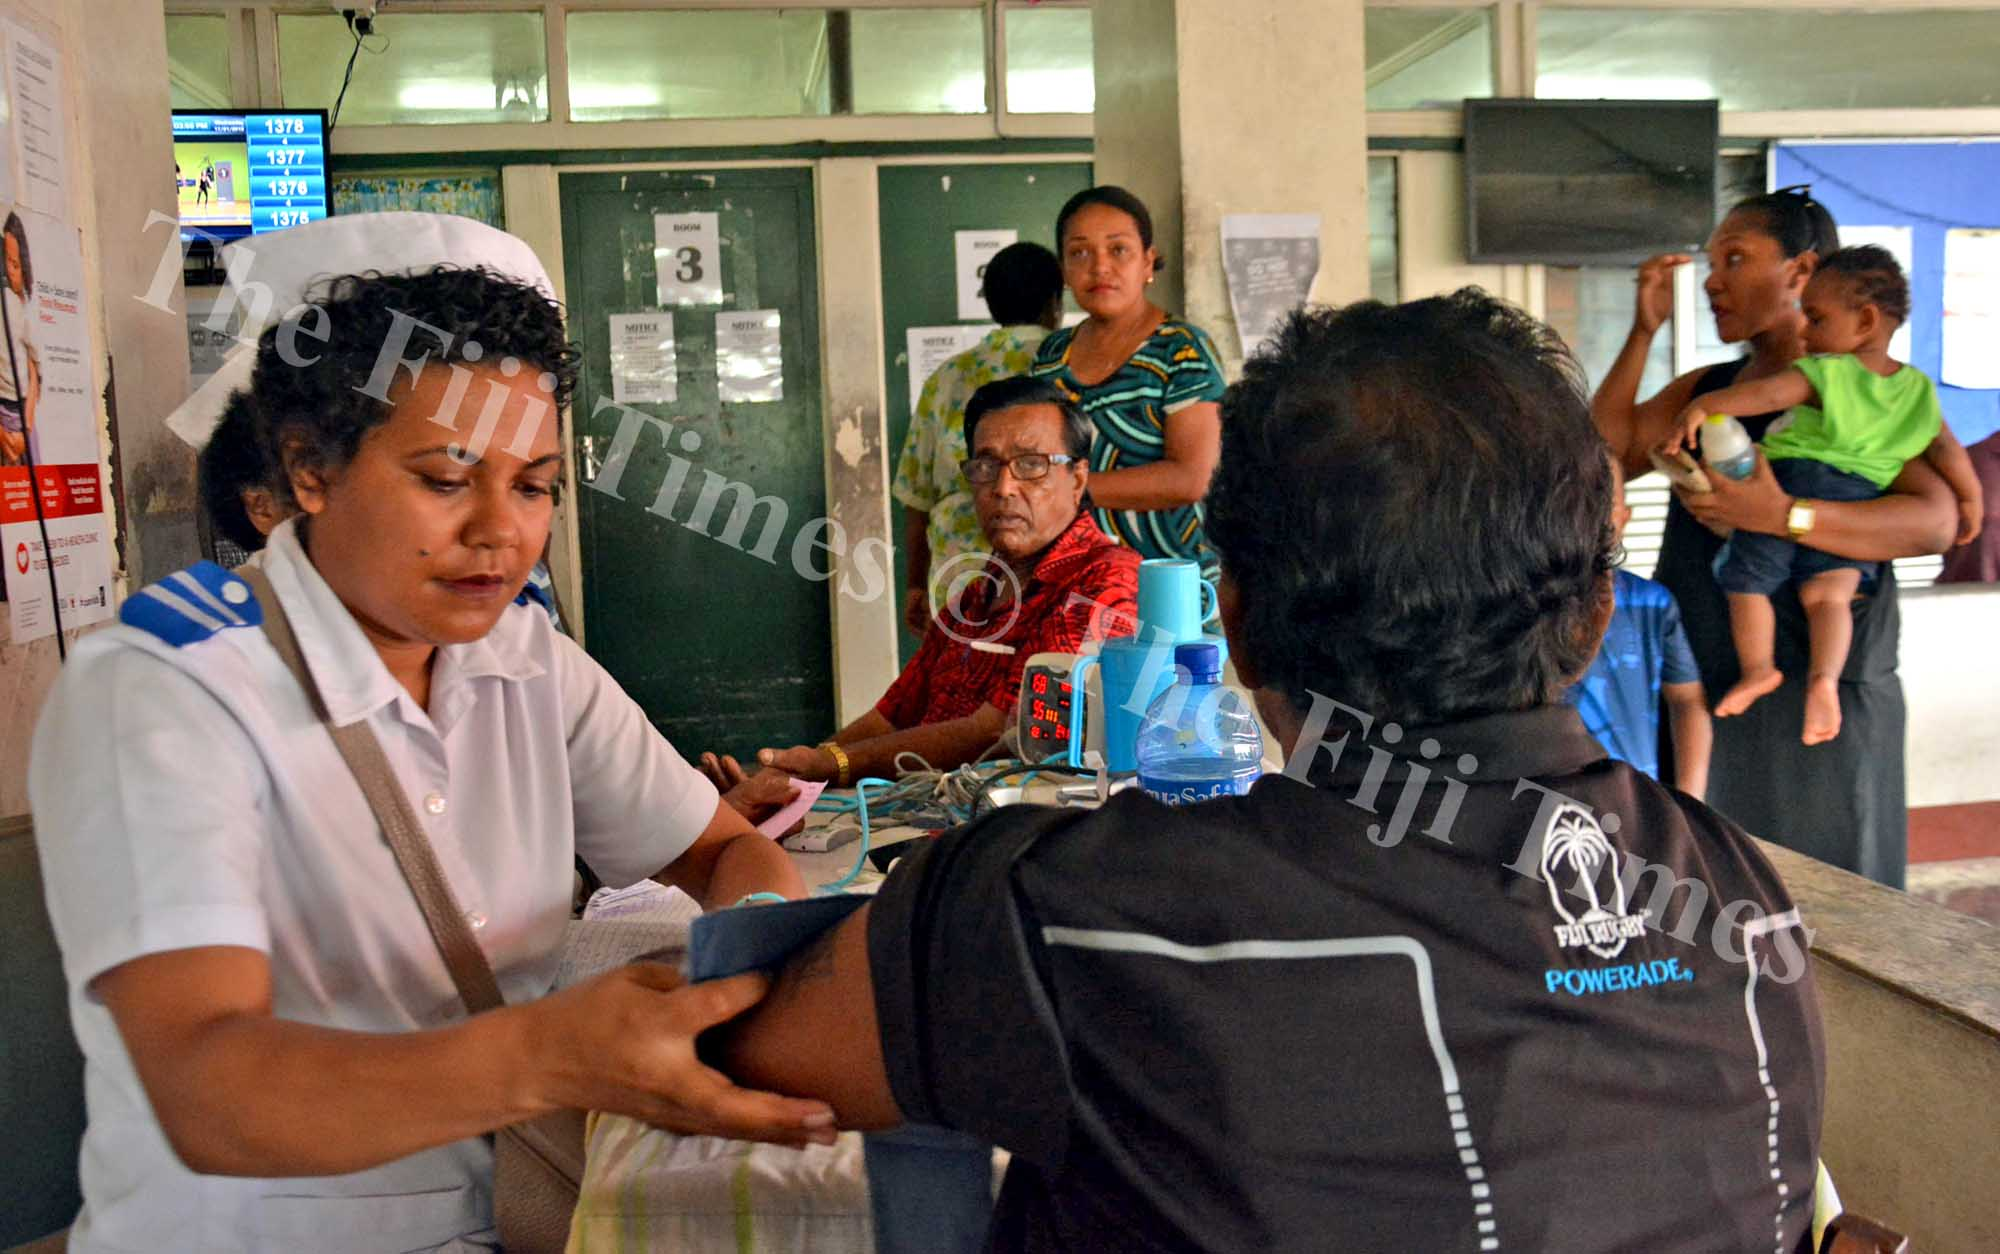 Staff nurse Lanieta Talolo, left, attends to patients at the Valelevu Health Centre in Nasinu on Wednesday, January 17, 2018. Picture: JONACANI LALAKOBAU